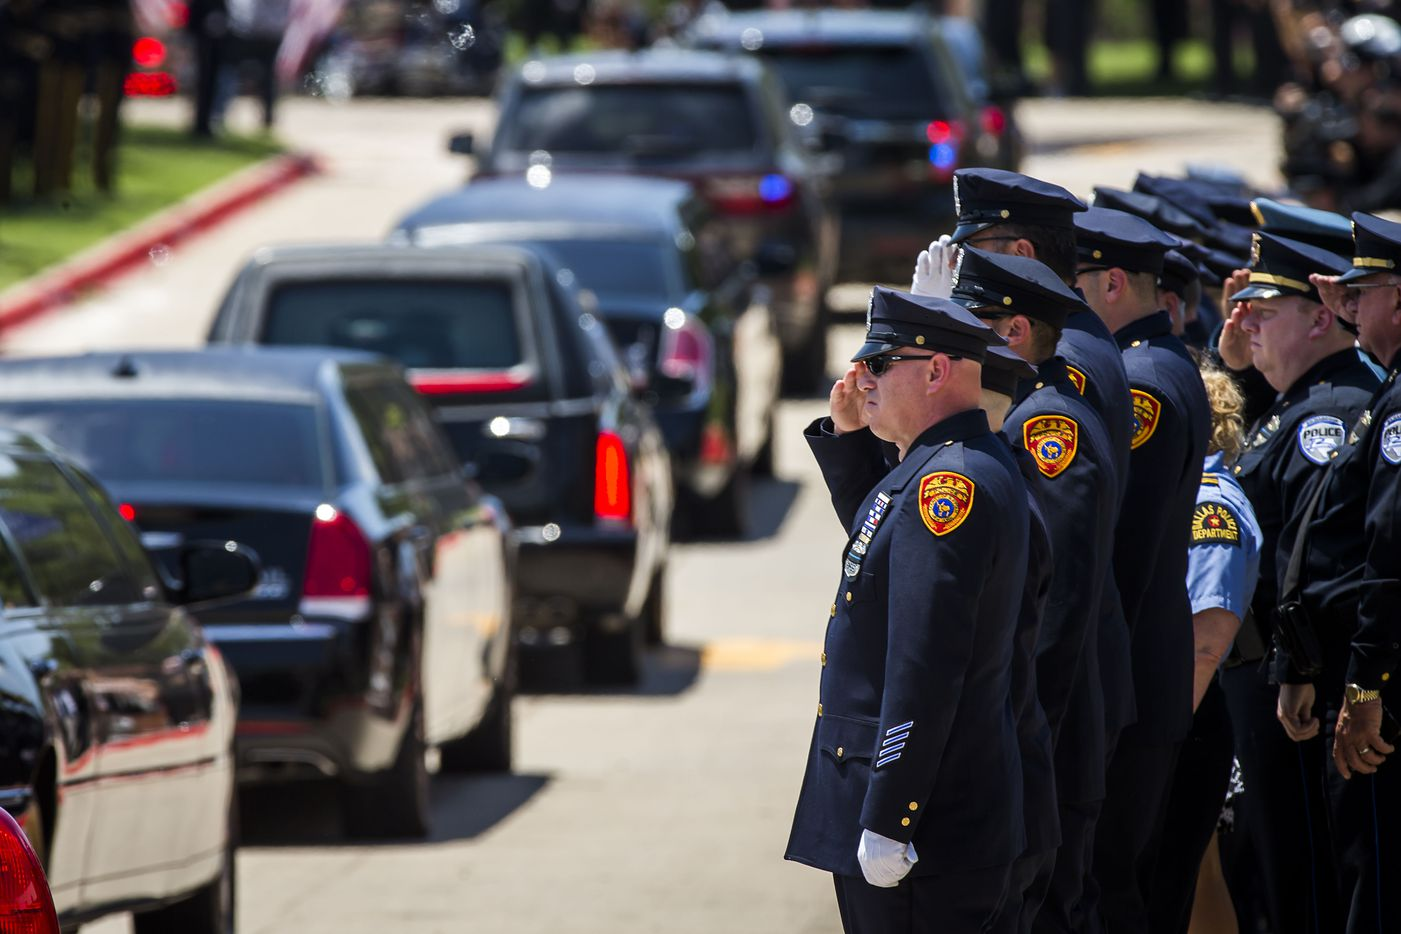 Law enforcement officer salute as the hearse carrying Dallas police Sr. Cpl. Lorne Ahrens departs Prestonwood Baptist Church following funeral services on Wednesday, July 13, 2016, in Plano.